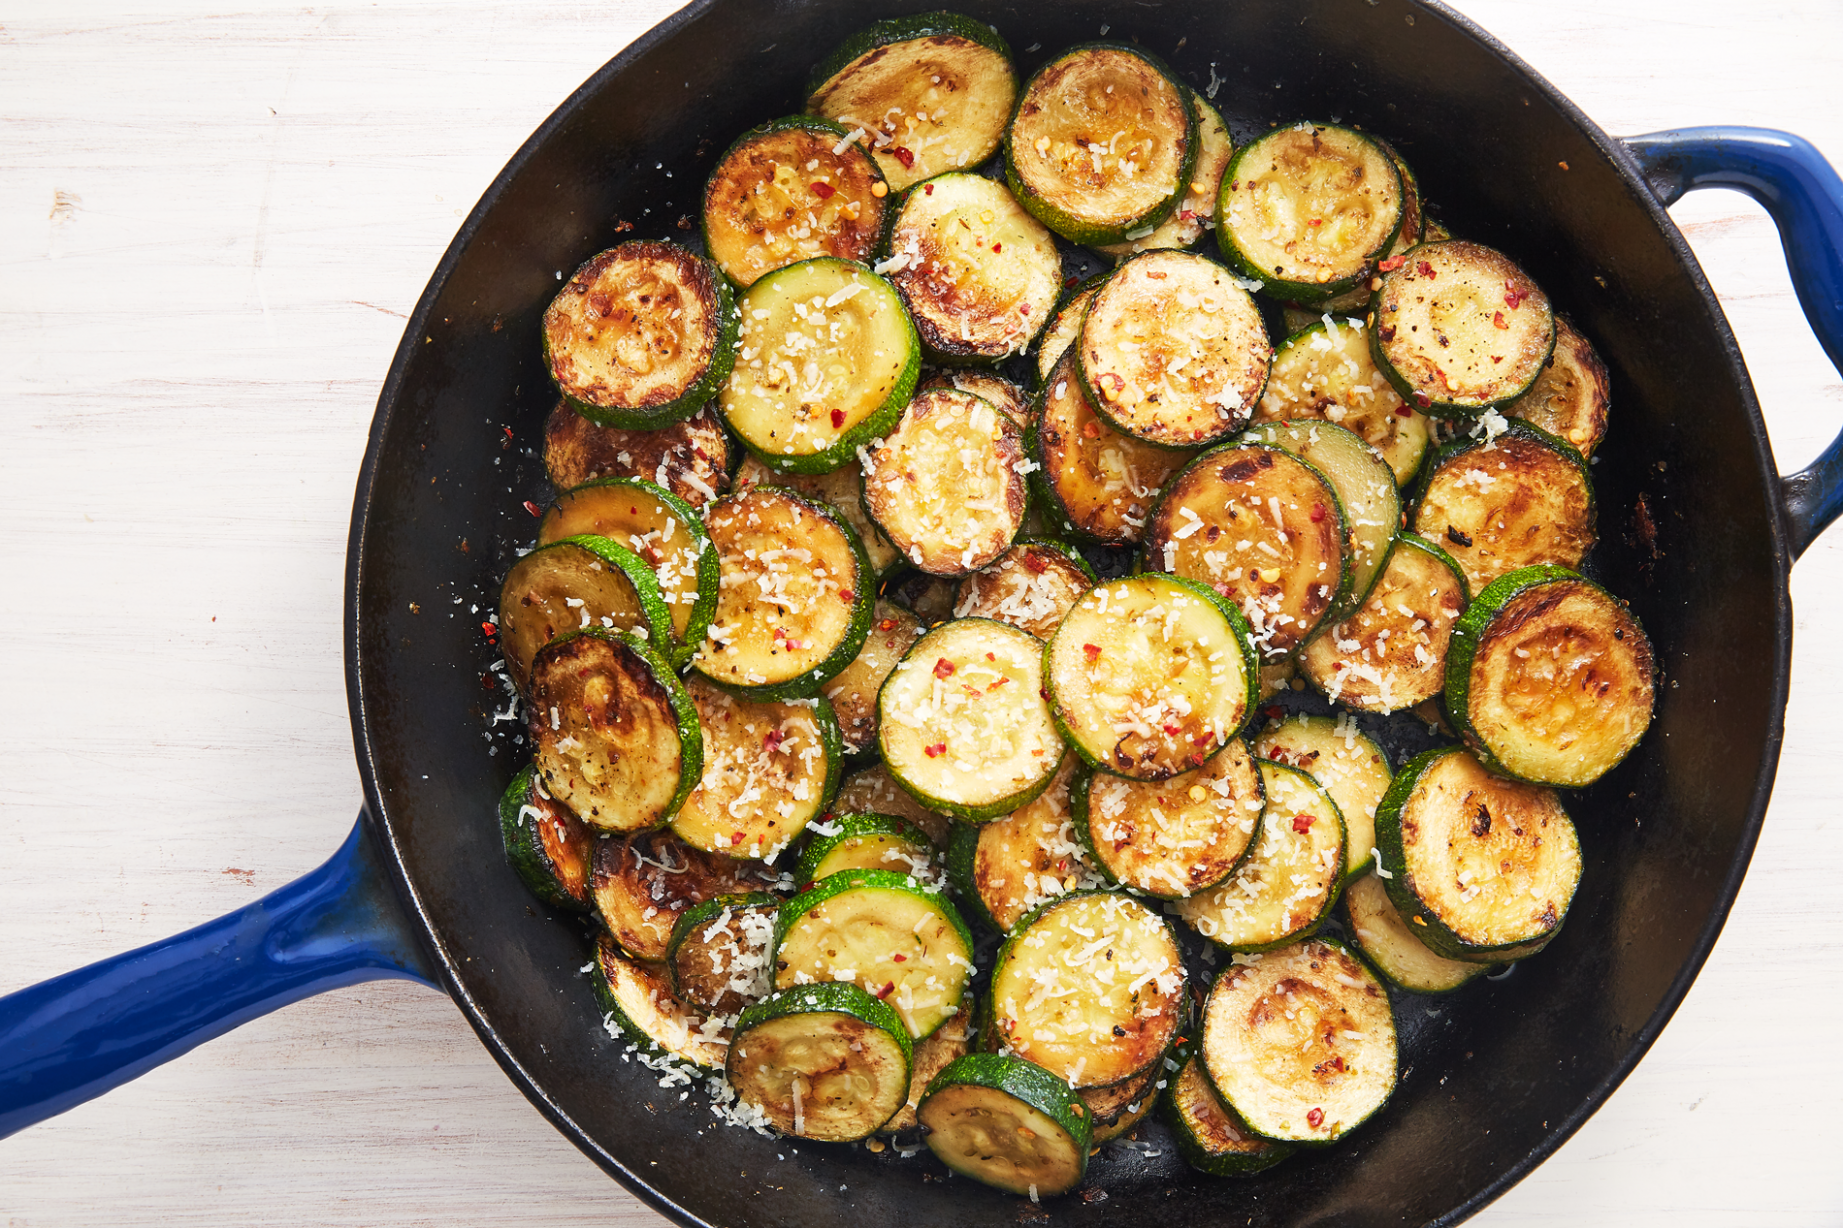 Garlic-Parm Zucchini Sauté - Recipes For Cooking Zucchini